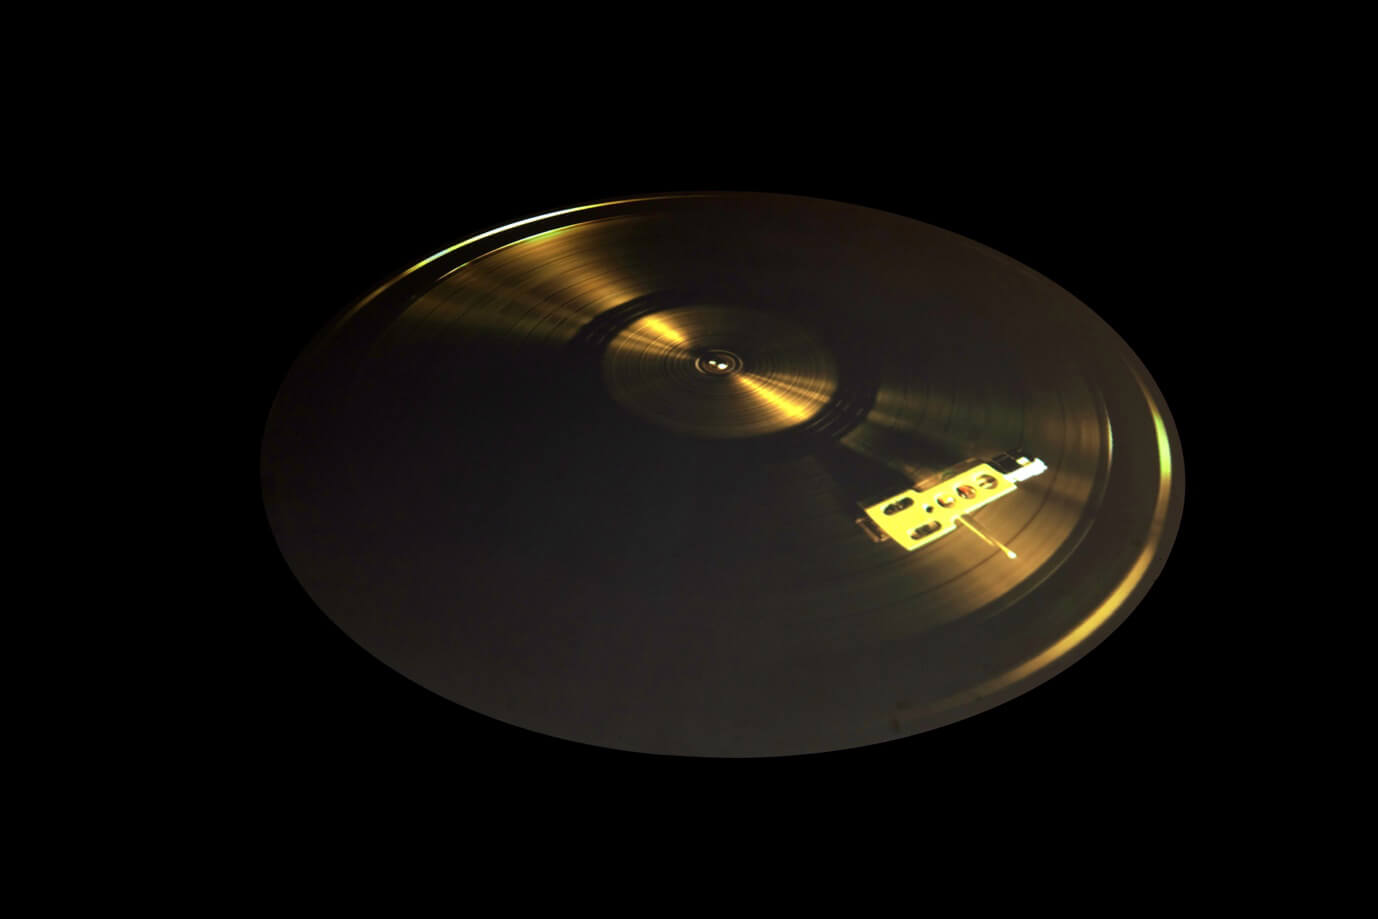 The-Golden-Record